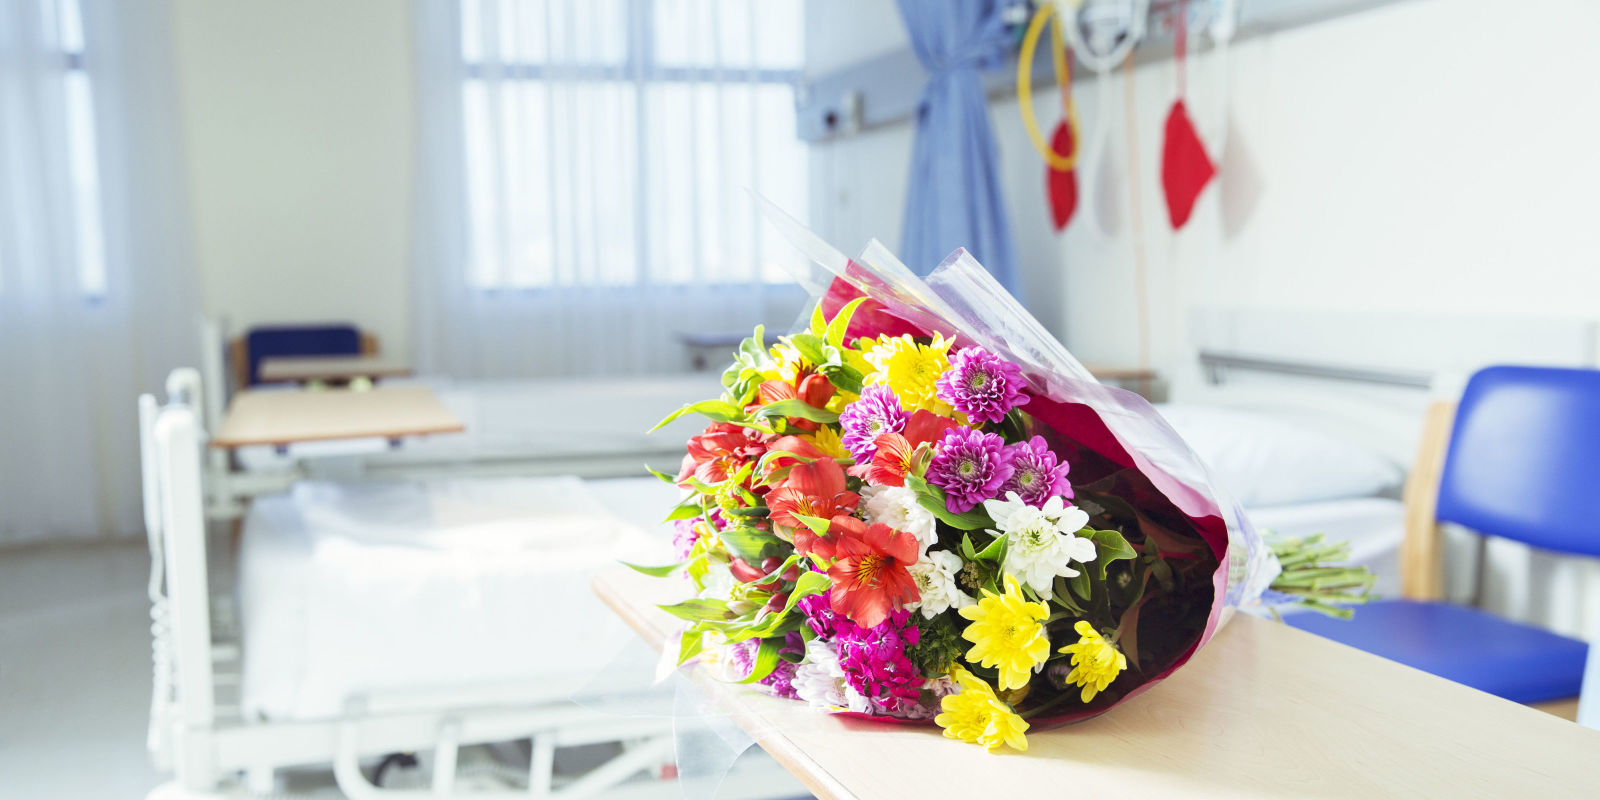 Hospitals Ban Flowers and Balloons Possible Infection From Hospital Gifts